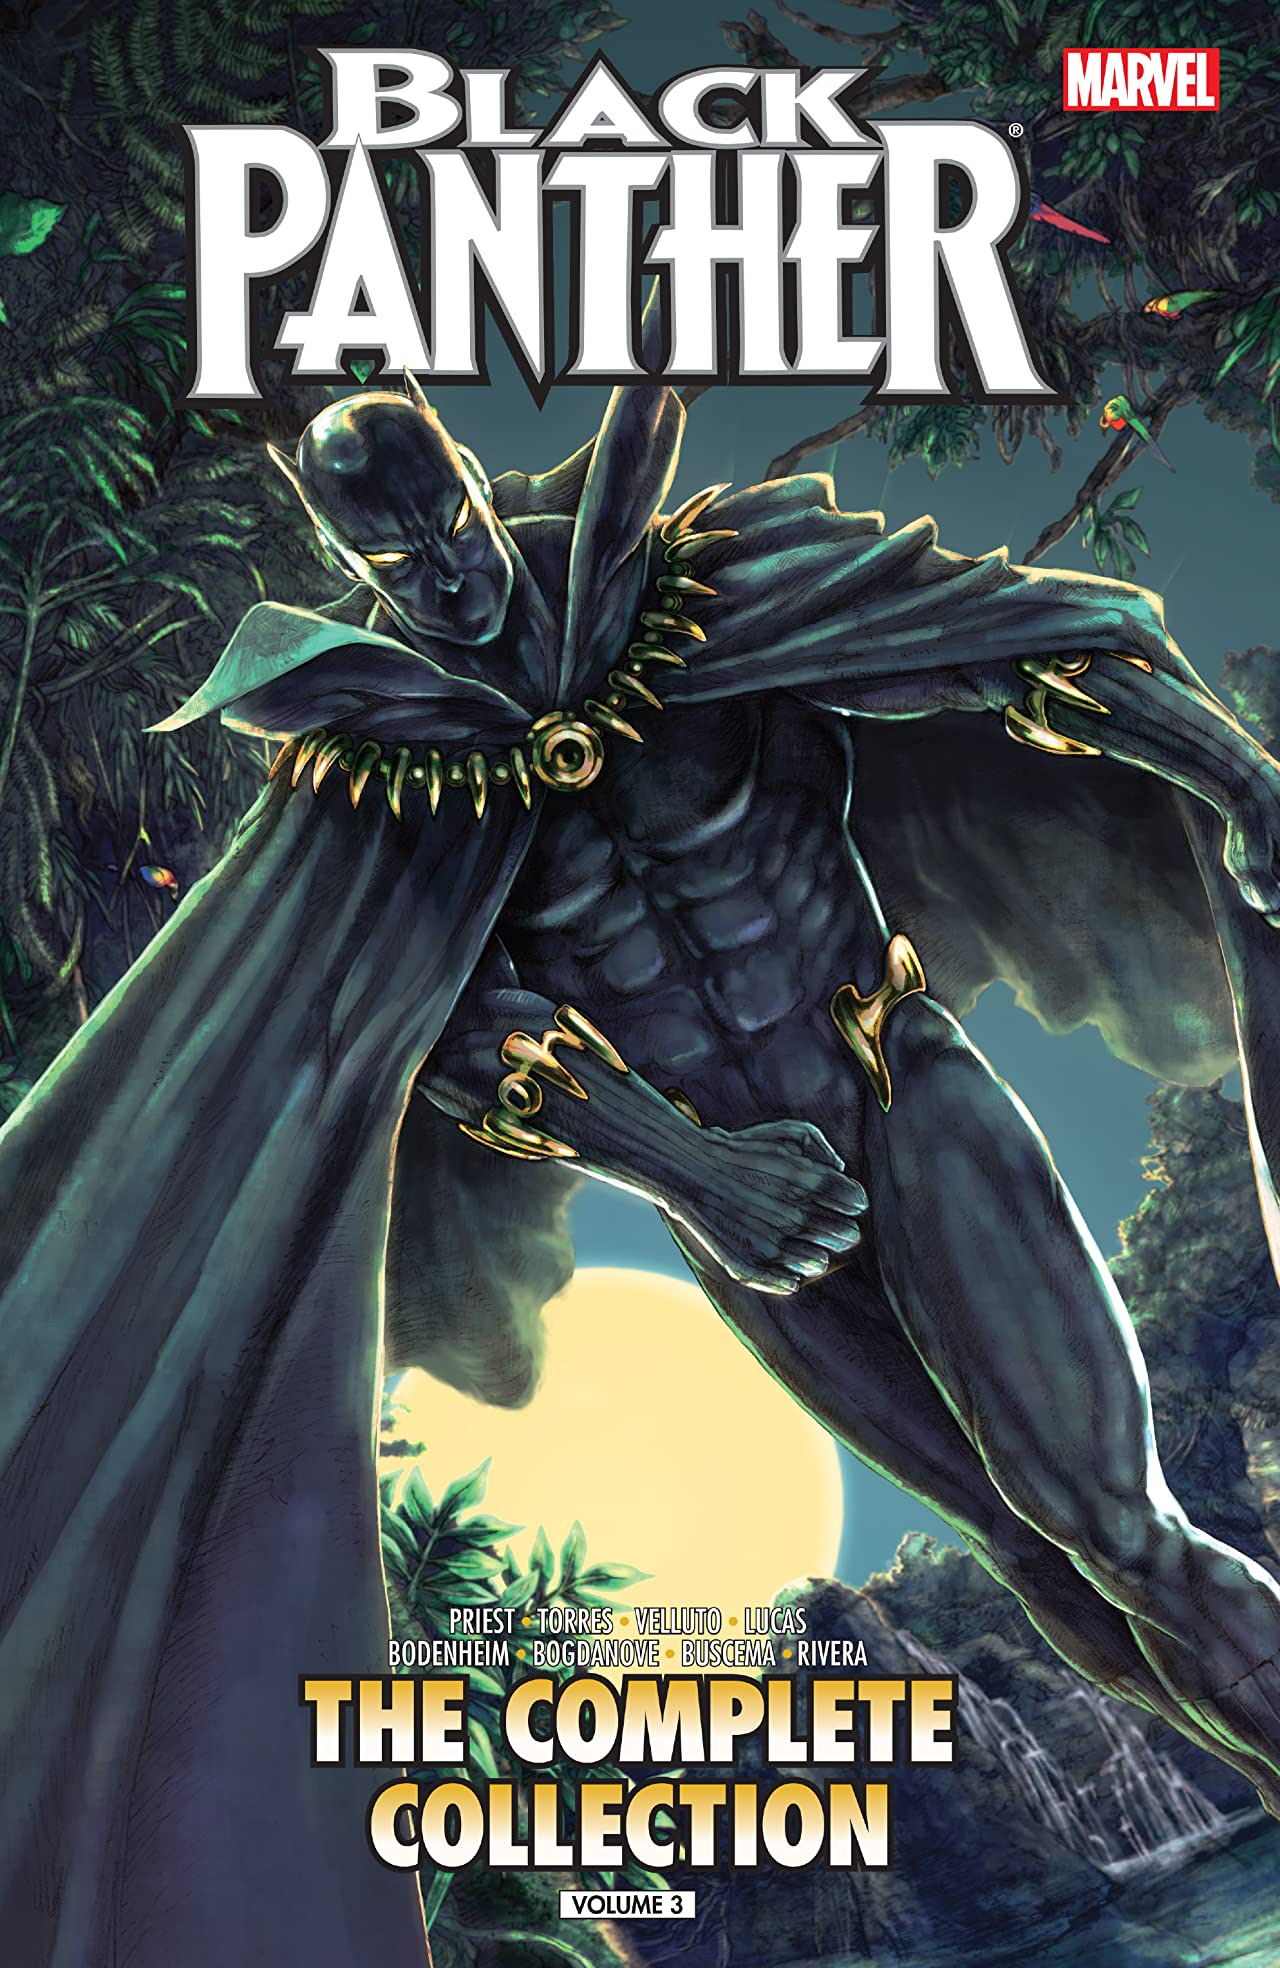 Black Panther by Christopher Priest: The Complete Collection Vol. 3